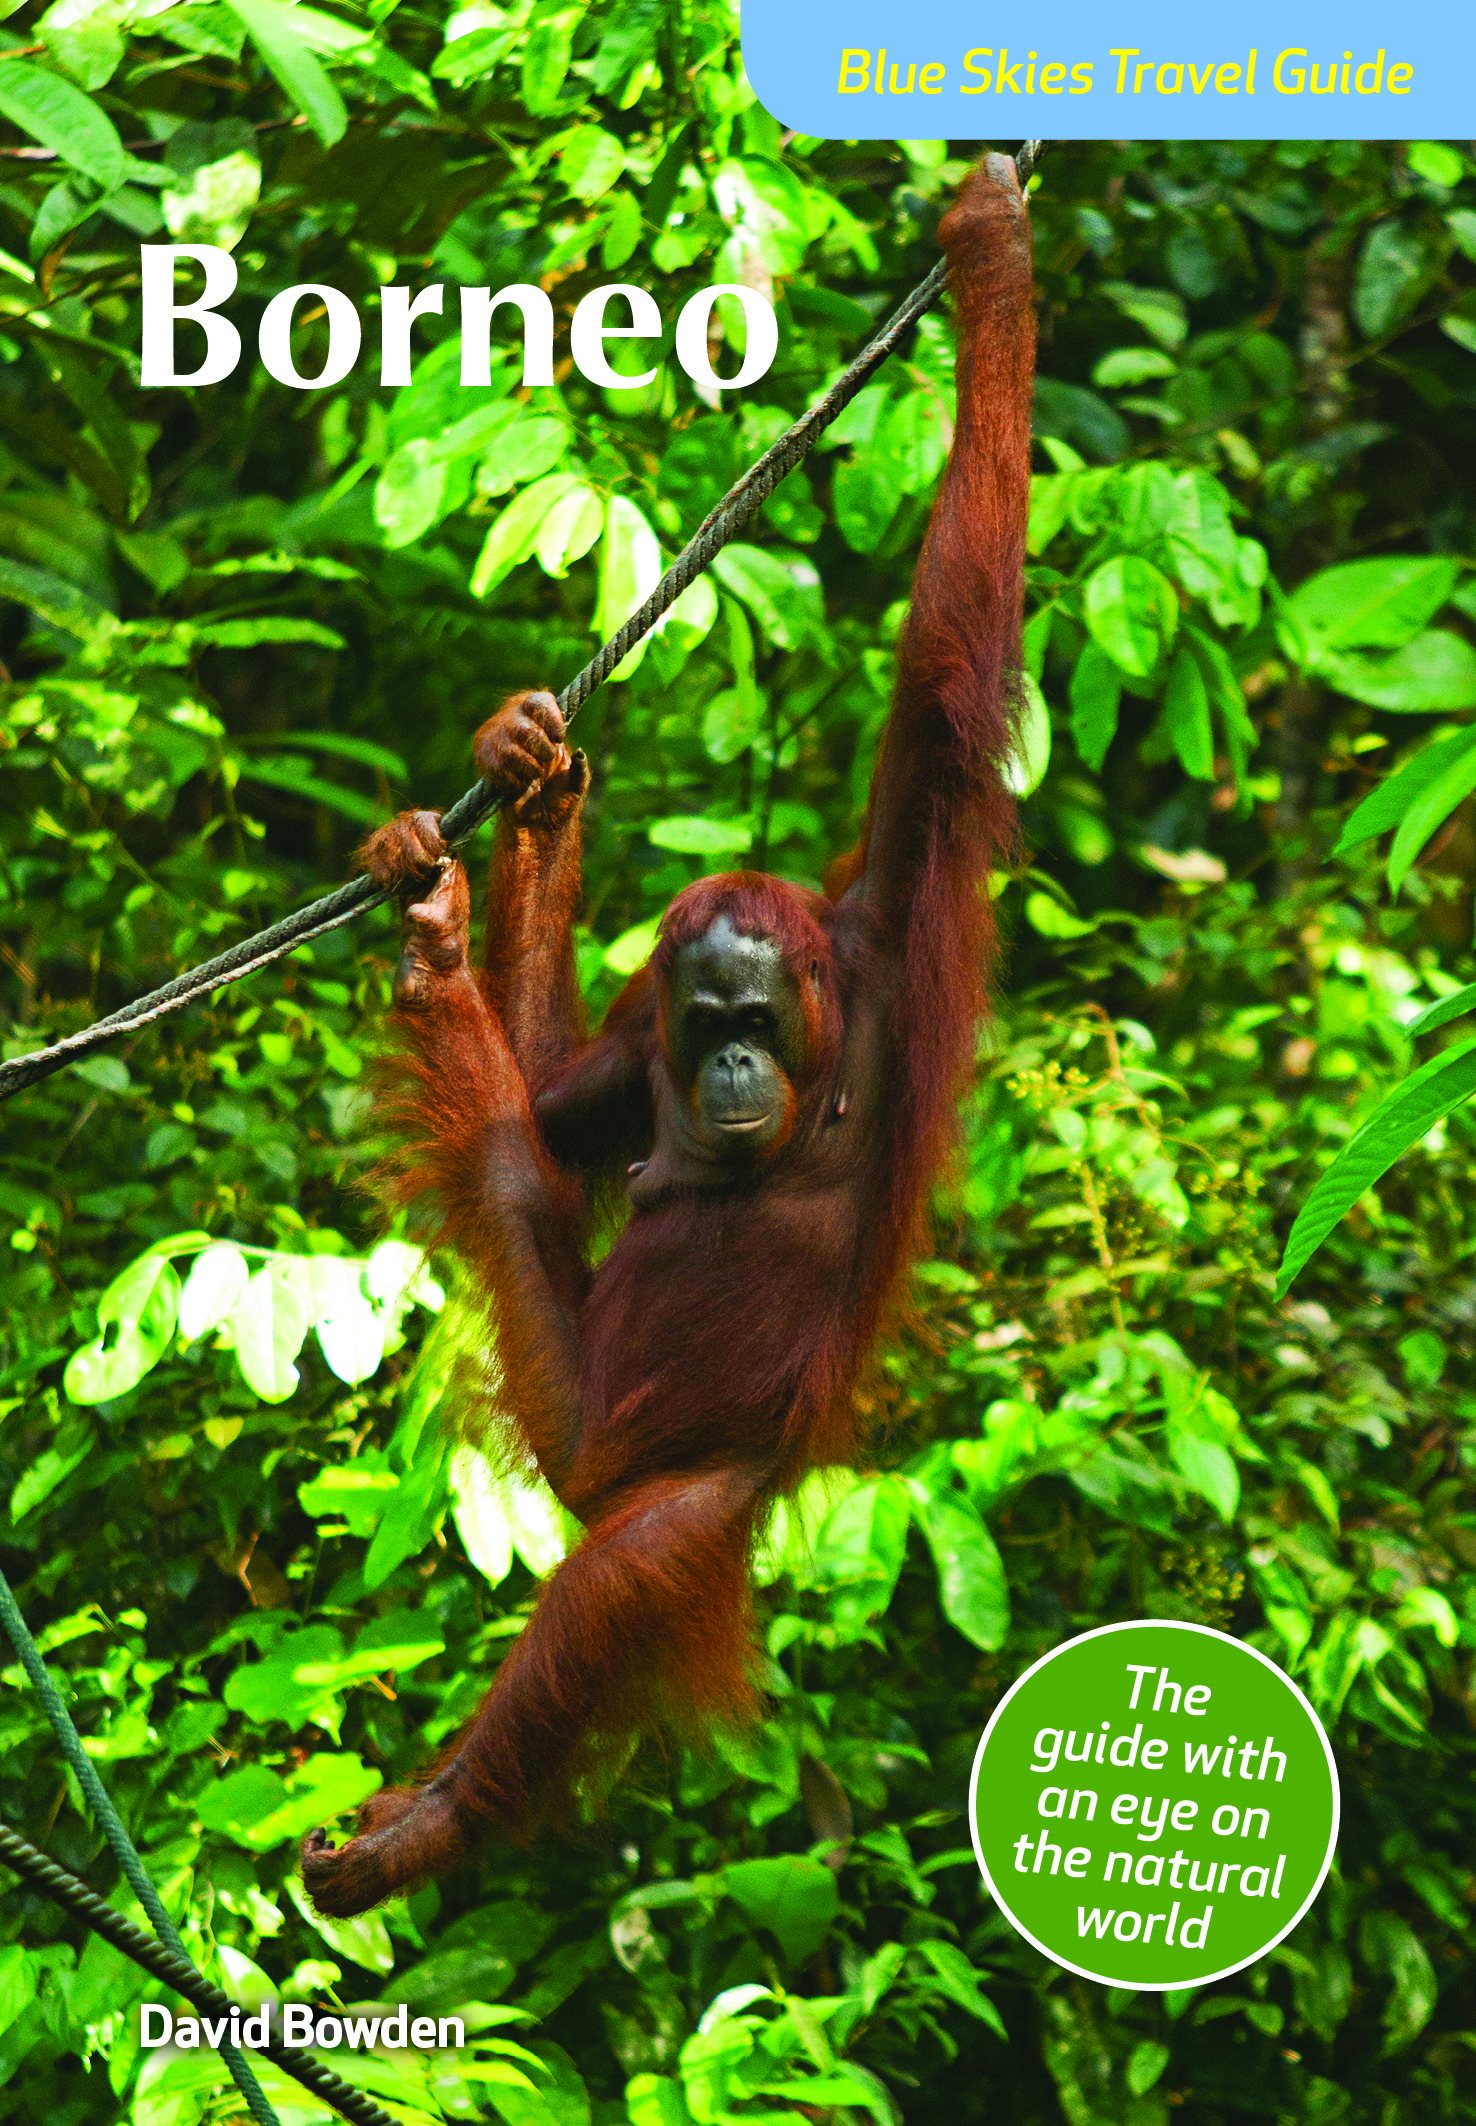 Blue Skies Guide to Borneo